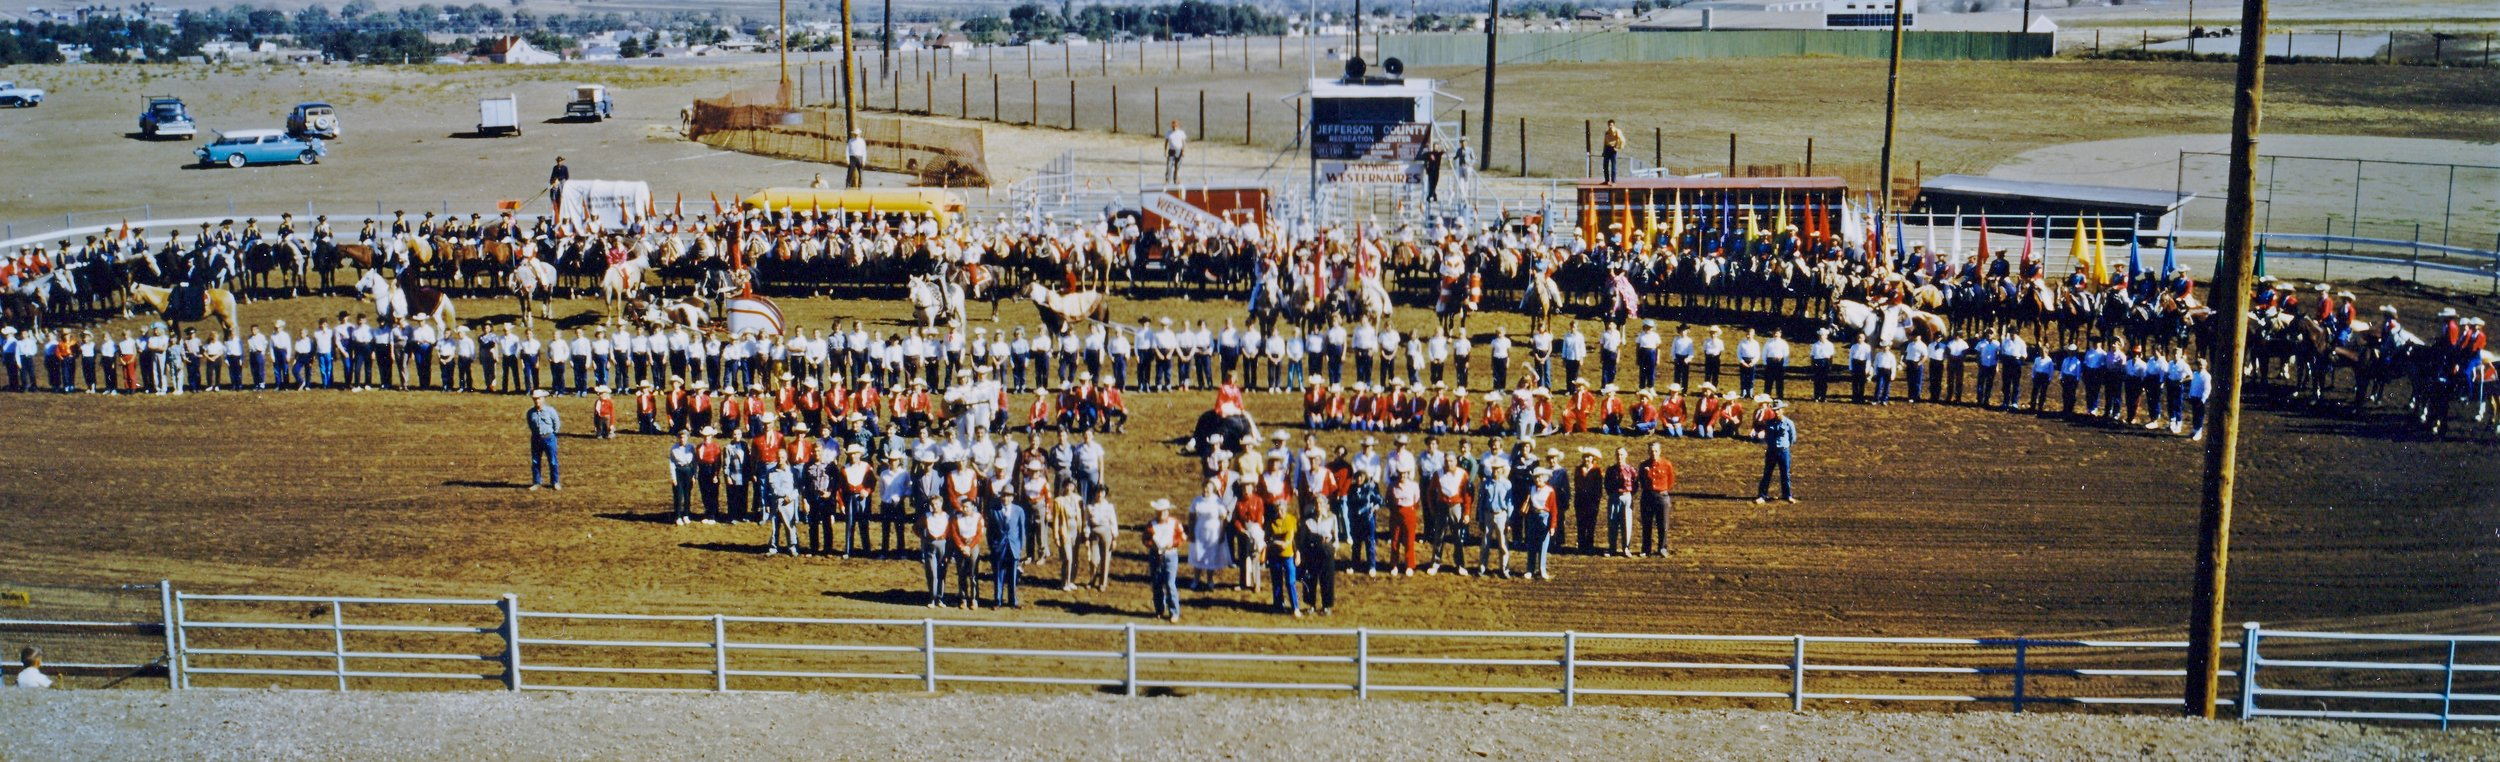 westernaires - 10th Anniversary picture -- 1958